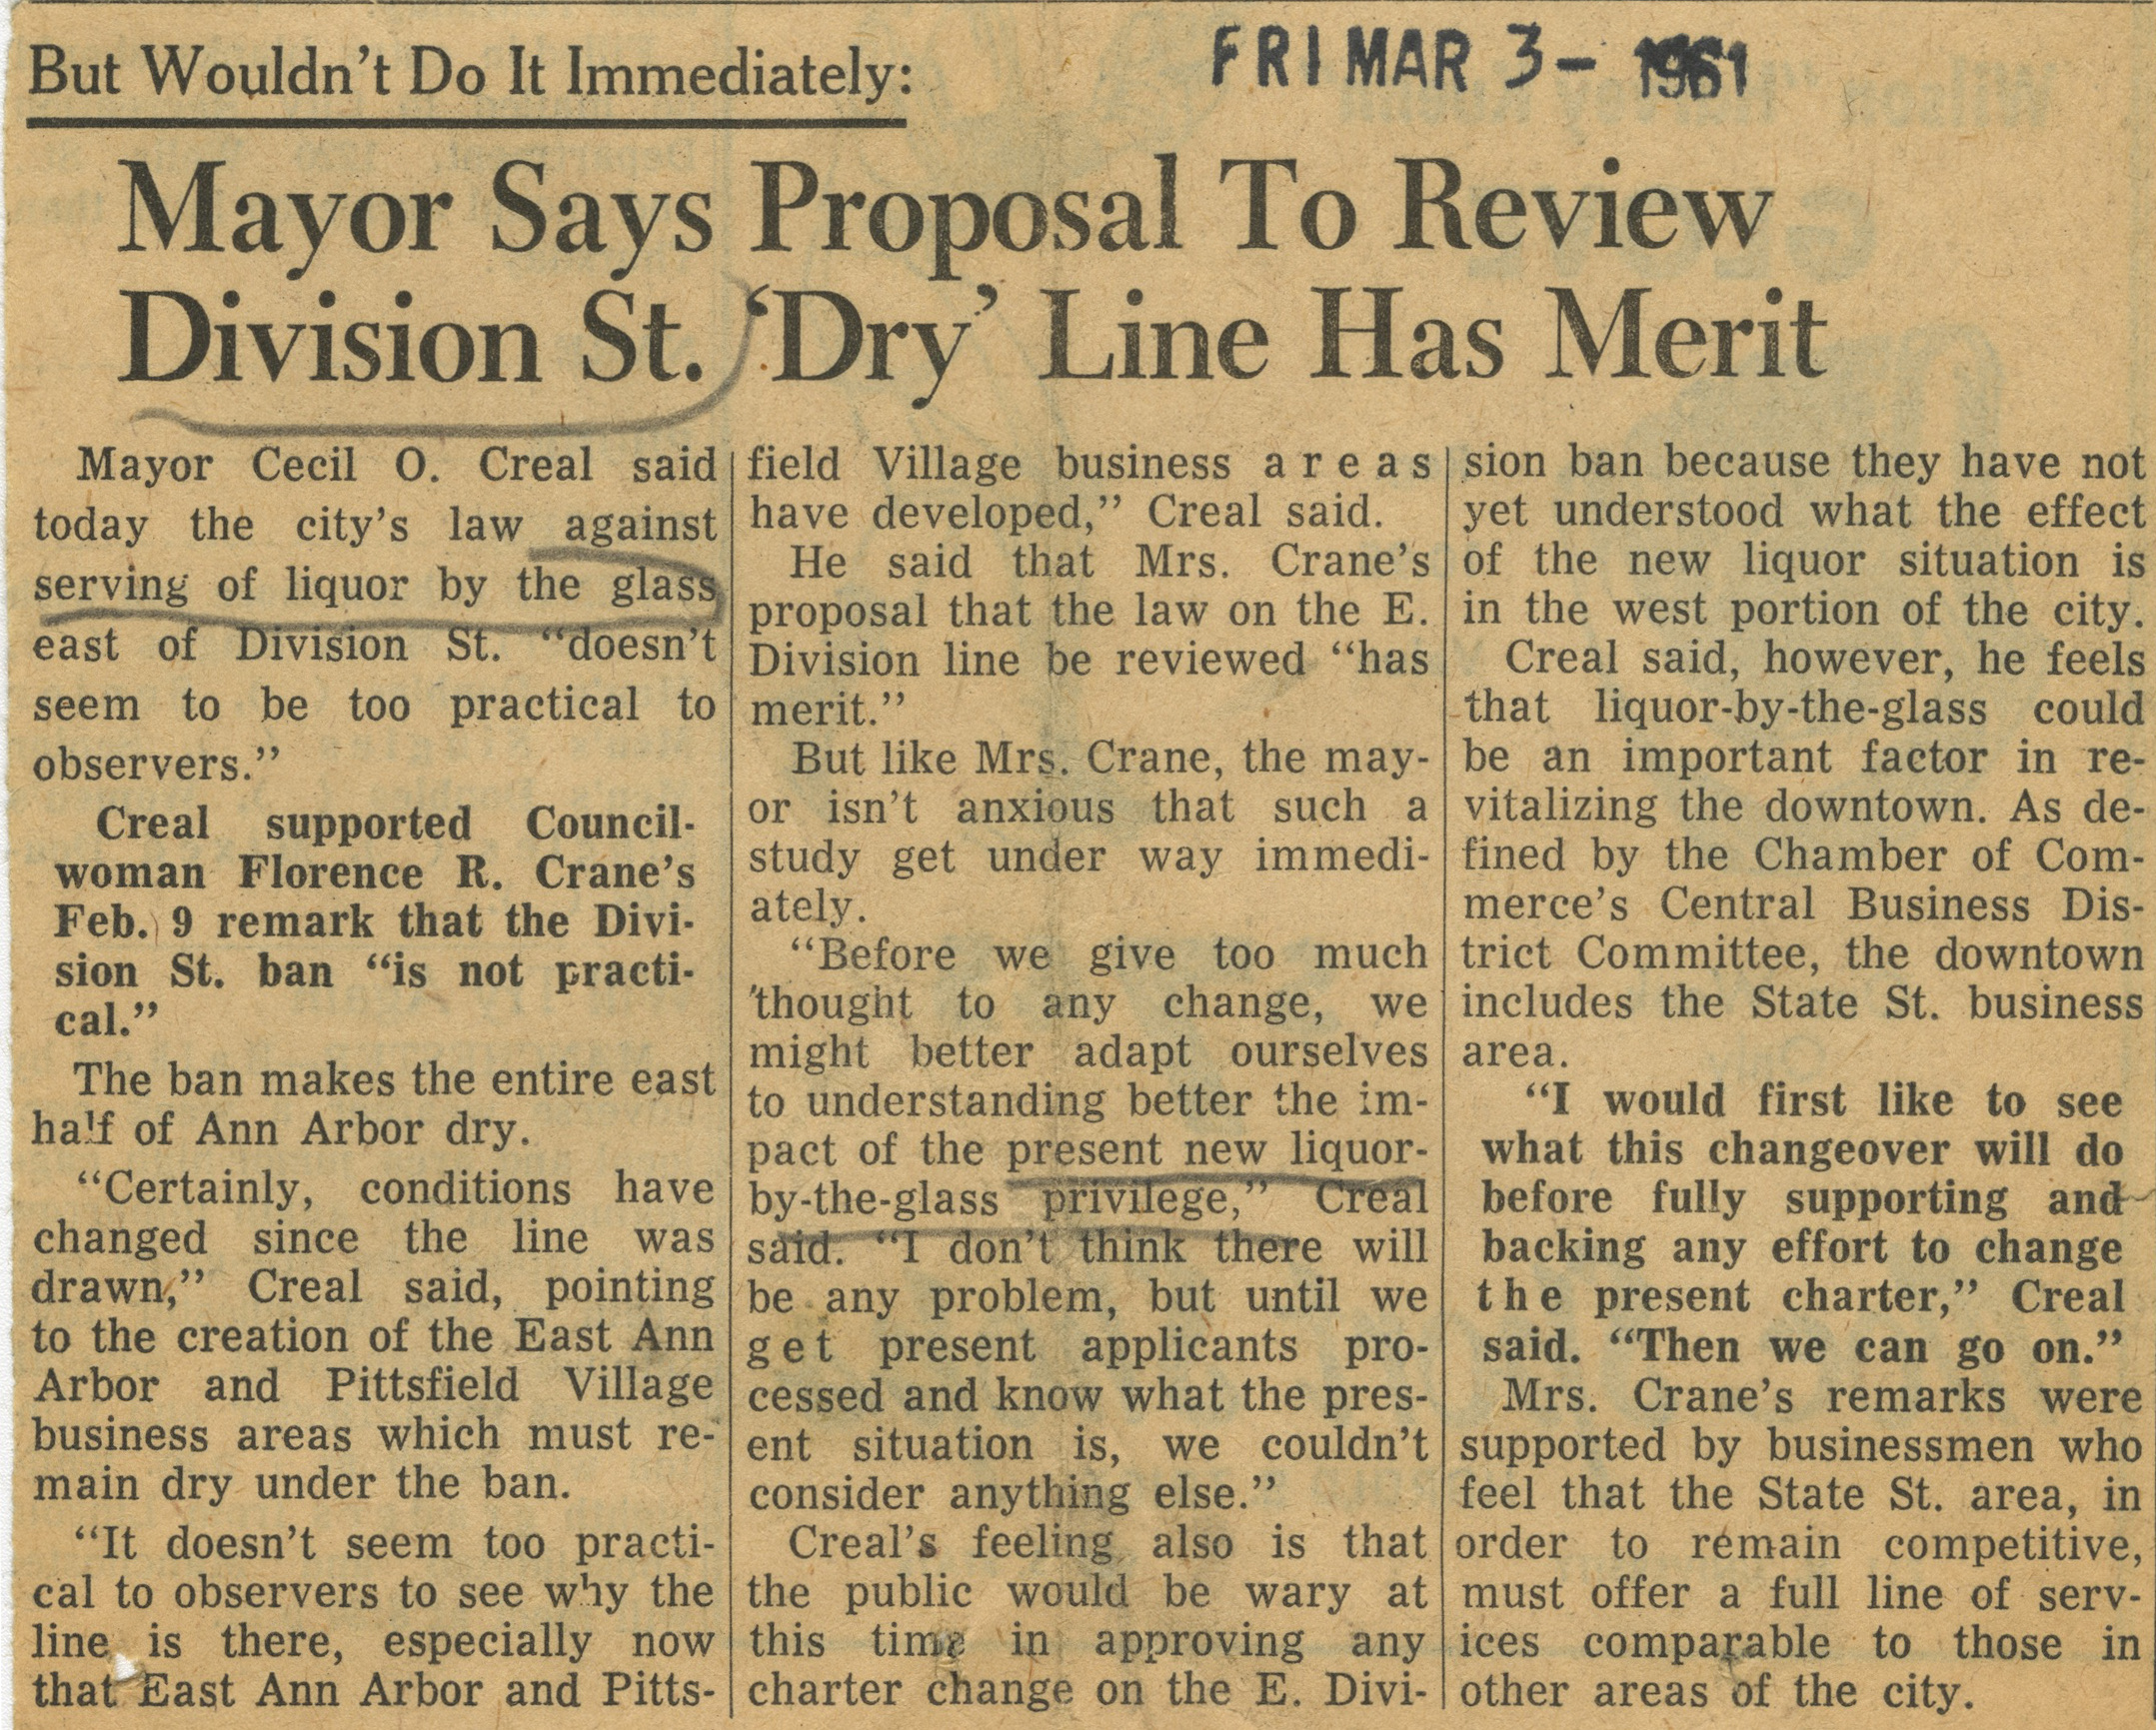 Mayor Says Proposal To Review Division St. 'Dry' Line Has Merit image